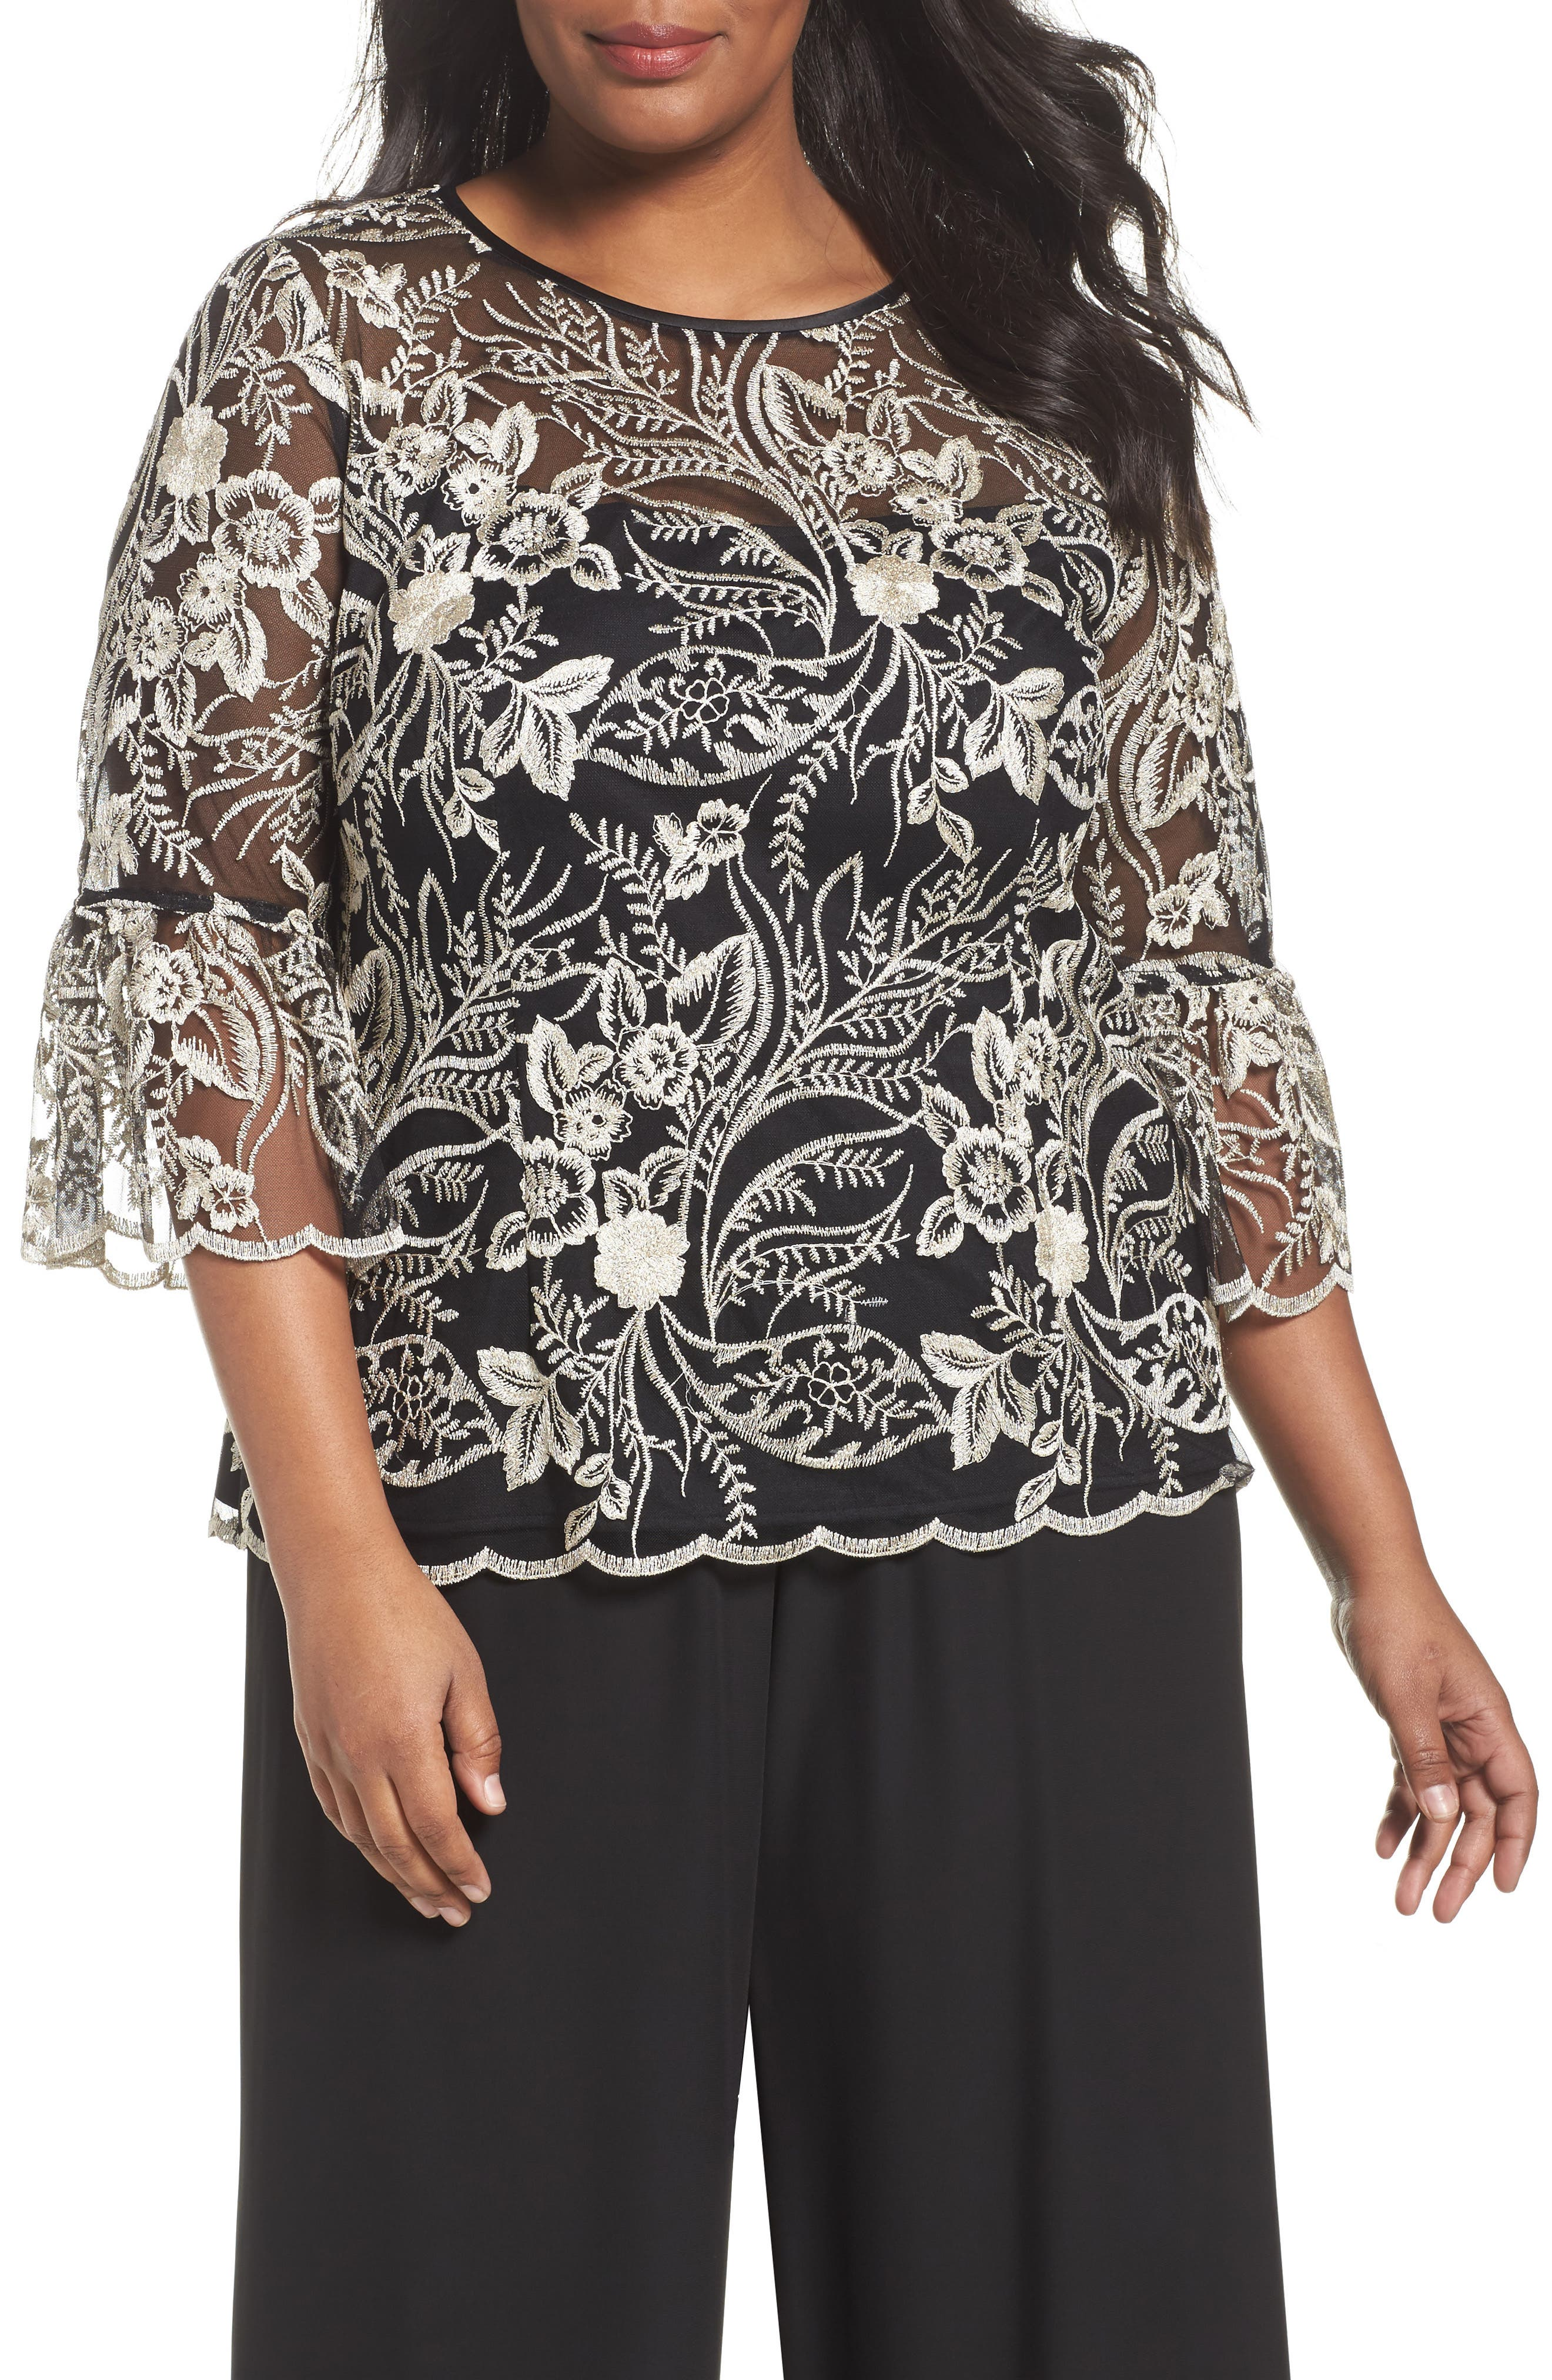 Embroidered Bell Sleeve Blouse,                             Main thumbnail 1, color,                             Black/ Champagne